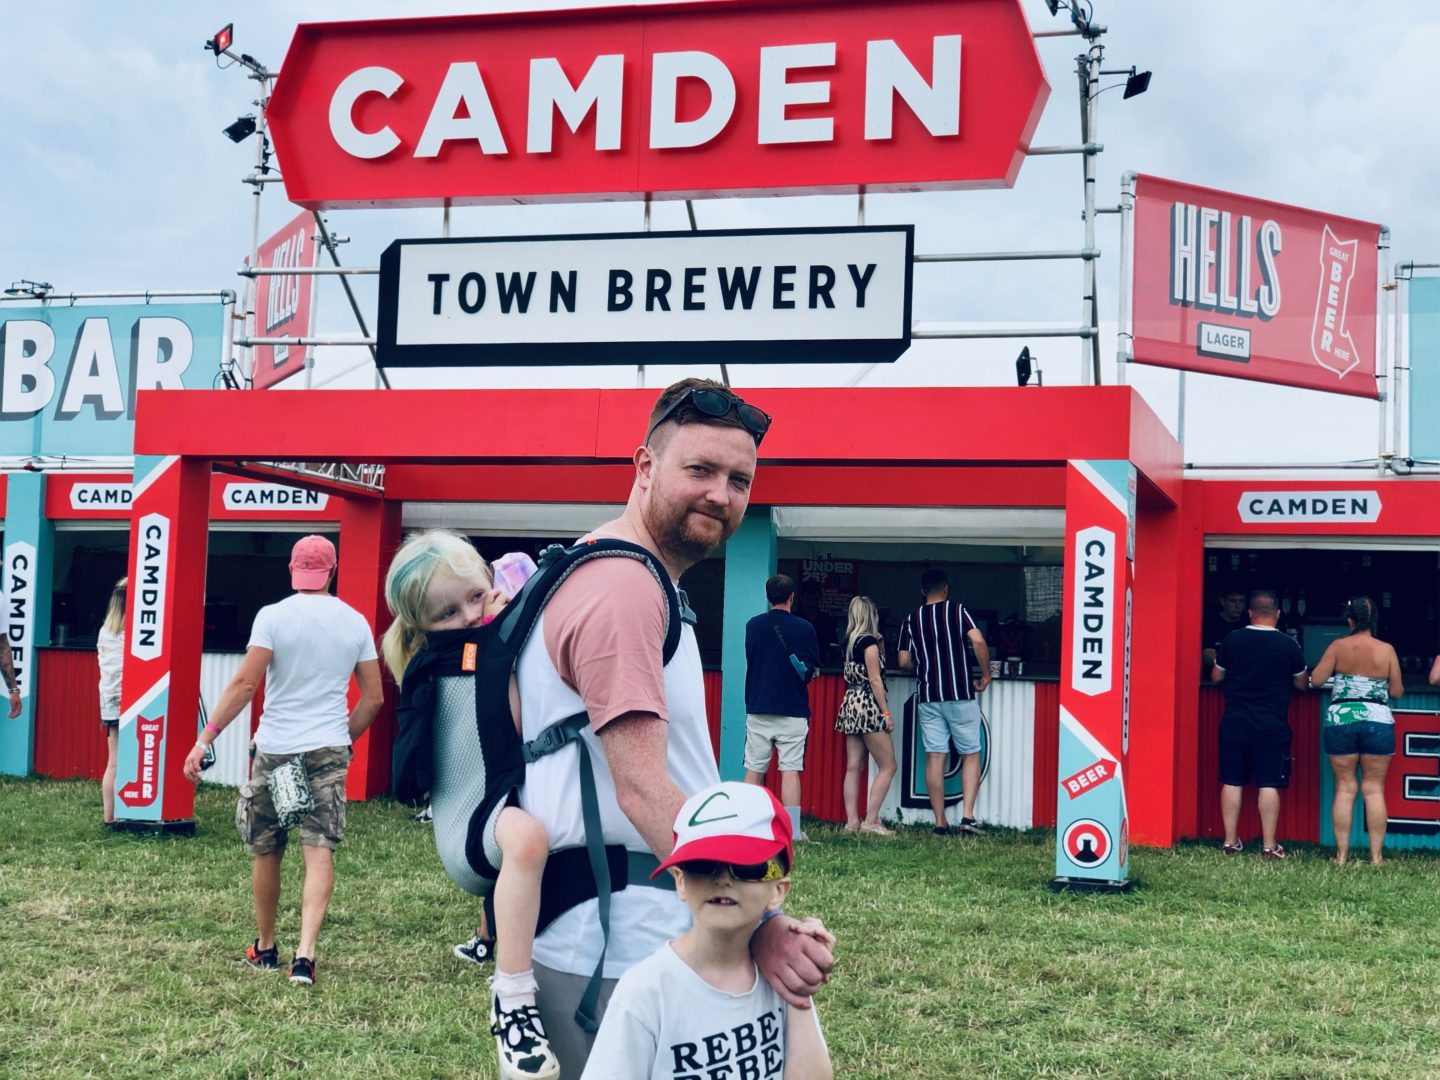 Y Not festival family review 2019